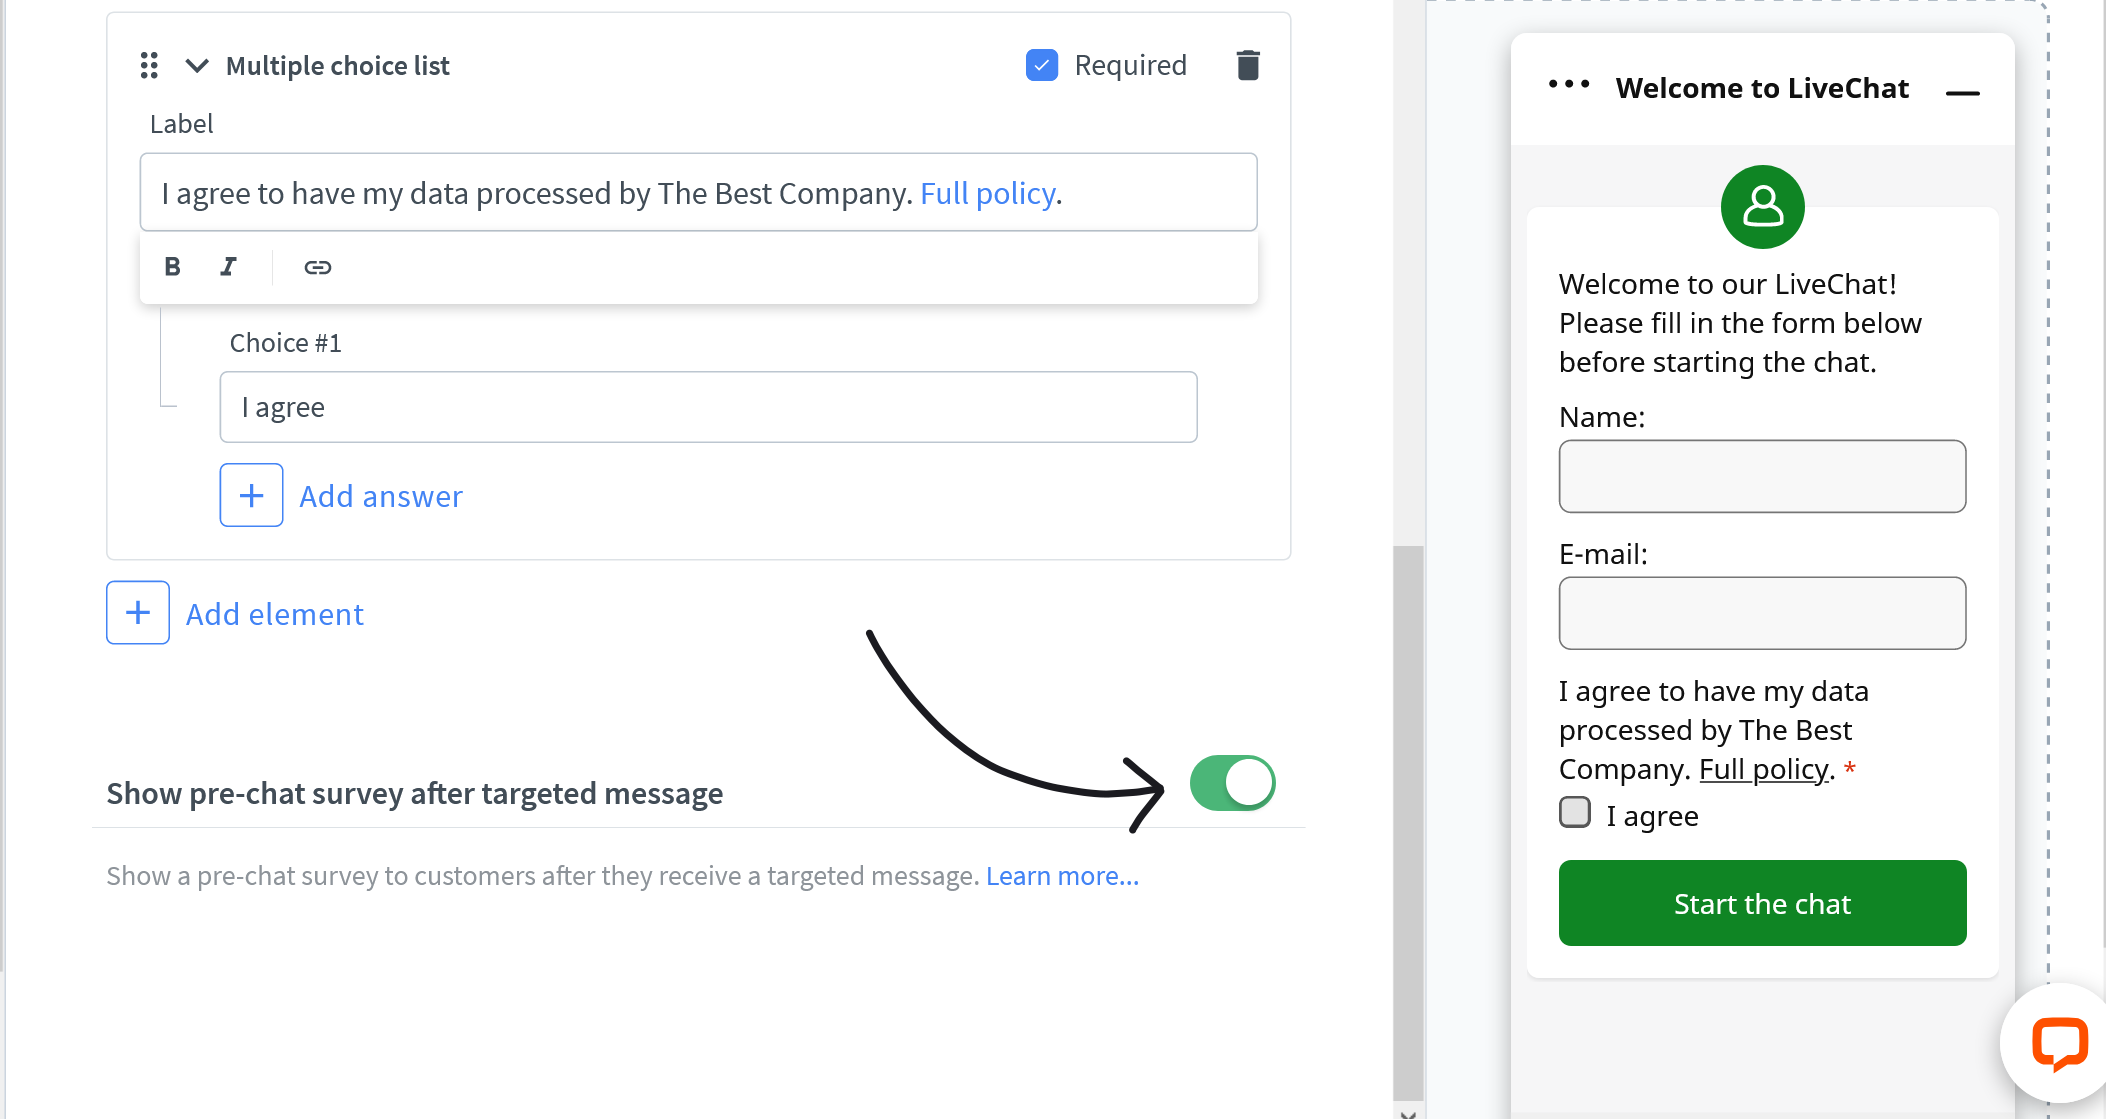 Show pre chat survey after targeted message